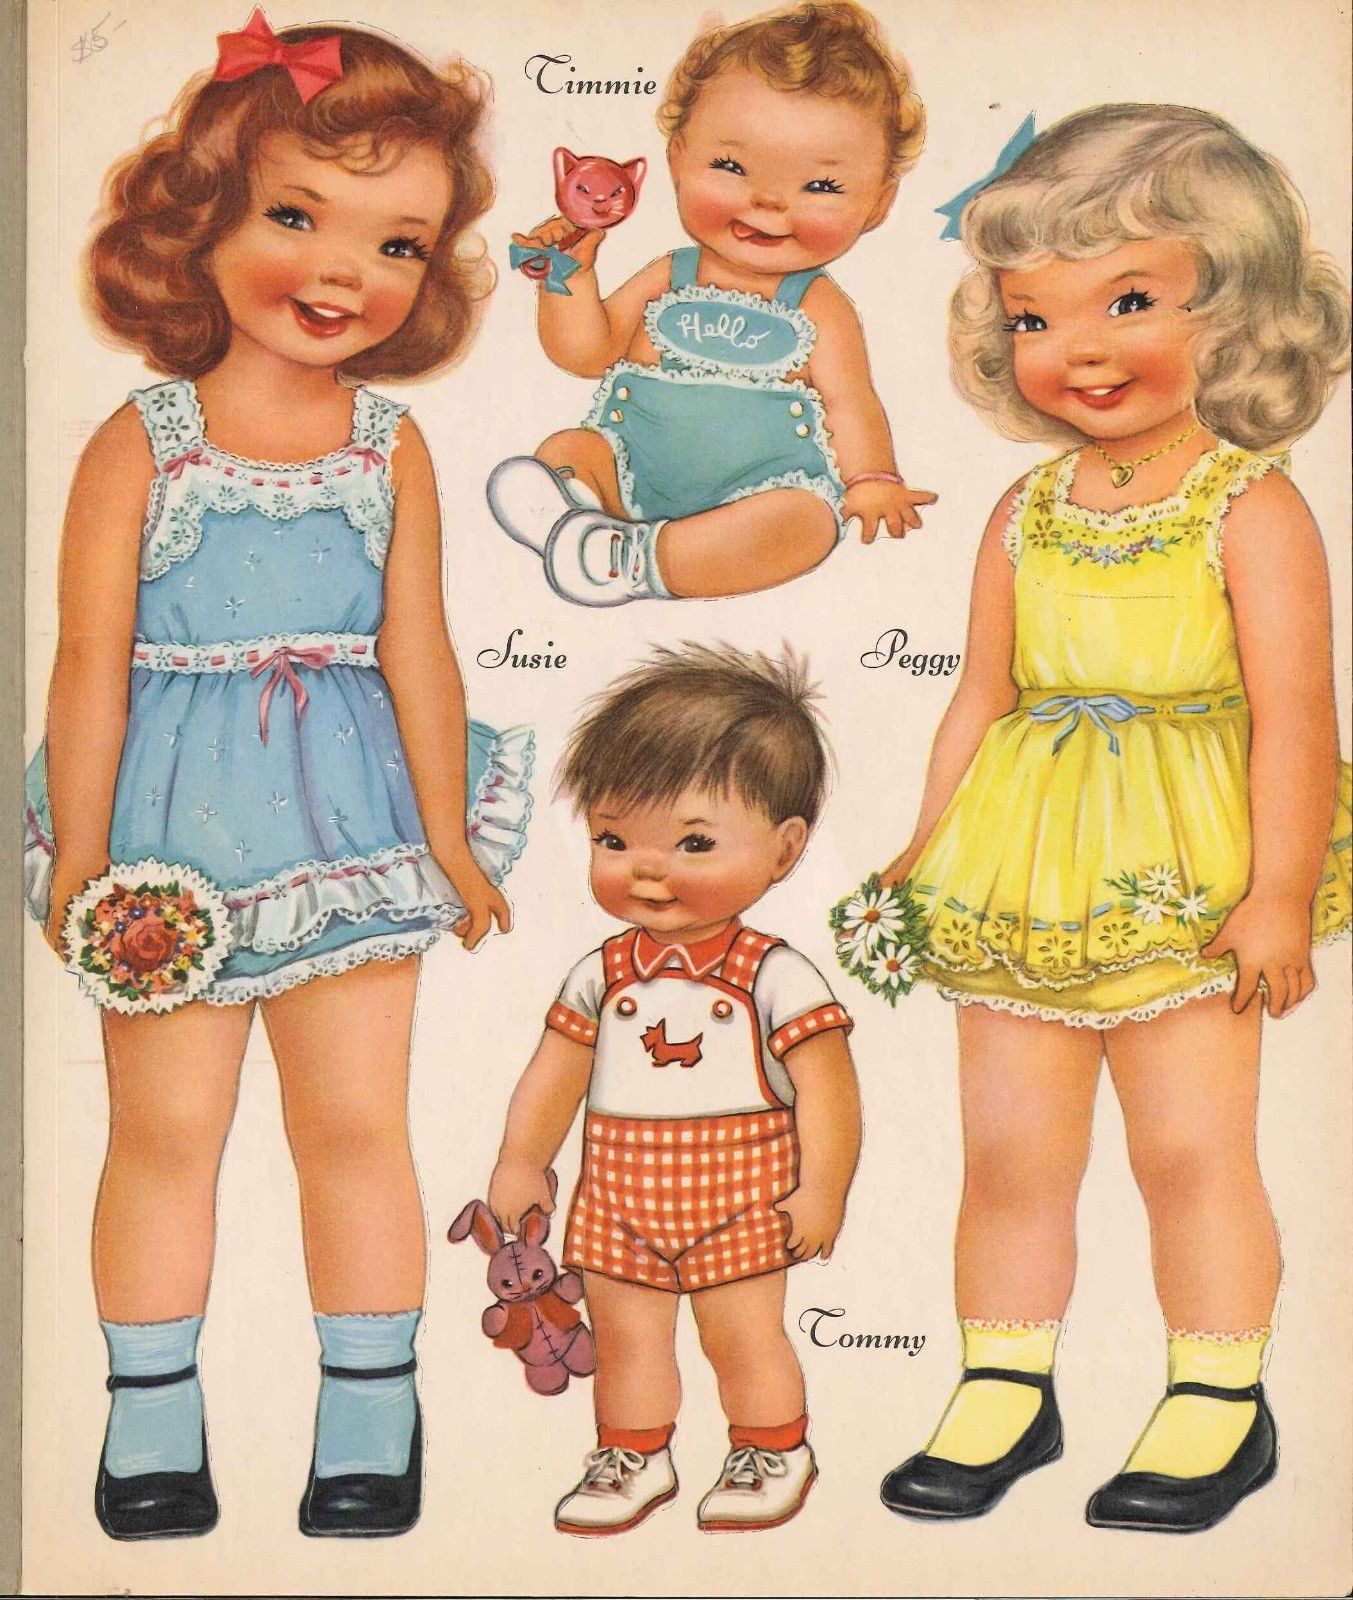 VINTGE UNCUT 1940S NURSERY SCHOOL PAPER DOLL ~HD LASER REPRODUCTION~LO PRICE